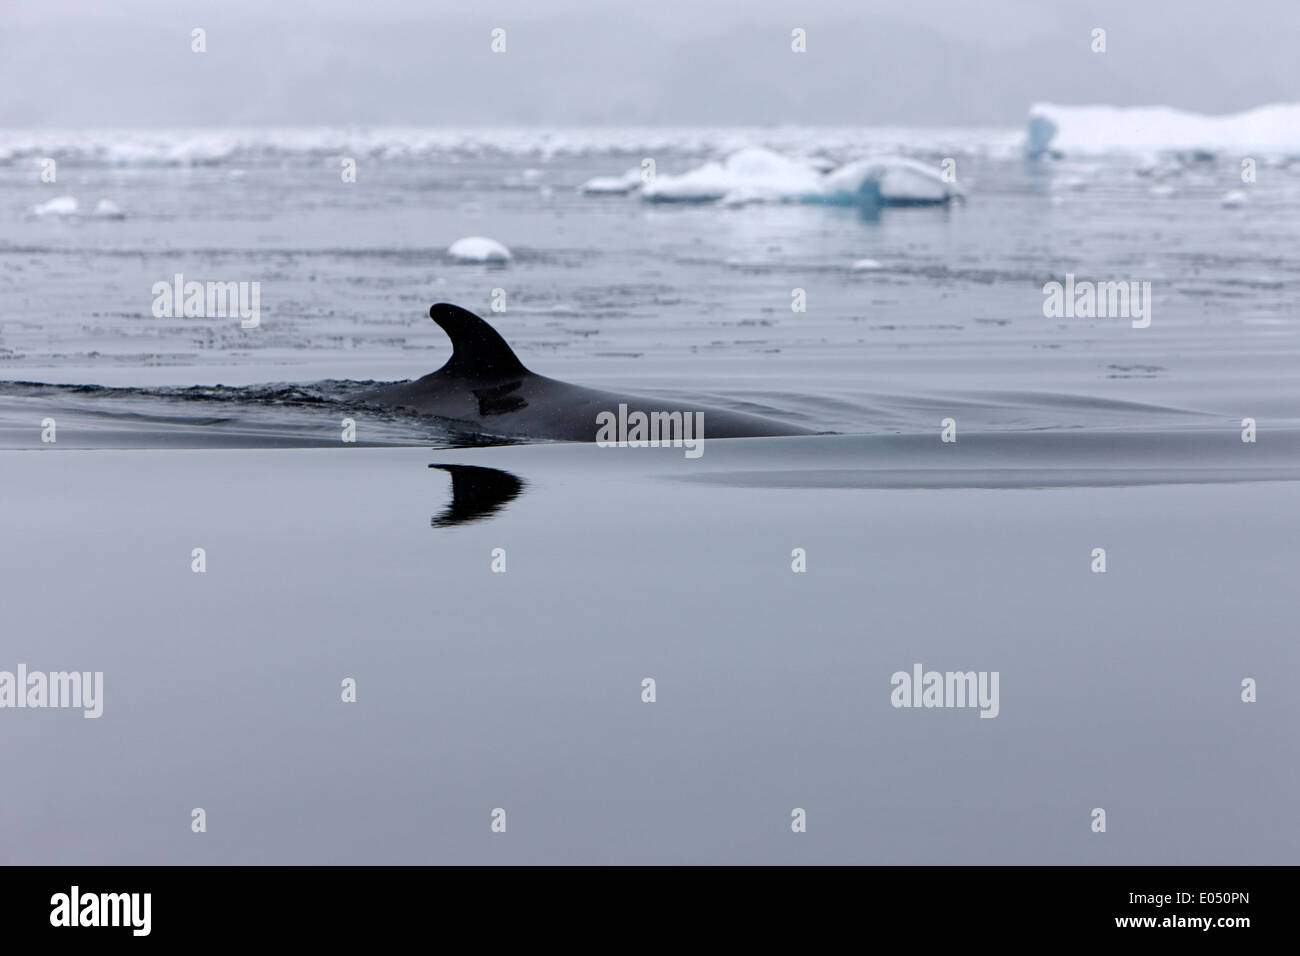 minke whale surfacing with dorsal fin in fournier bay antarctica - Stock Image